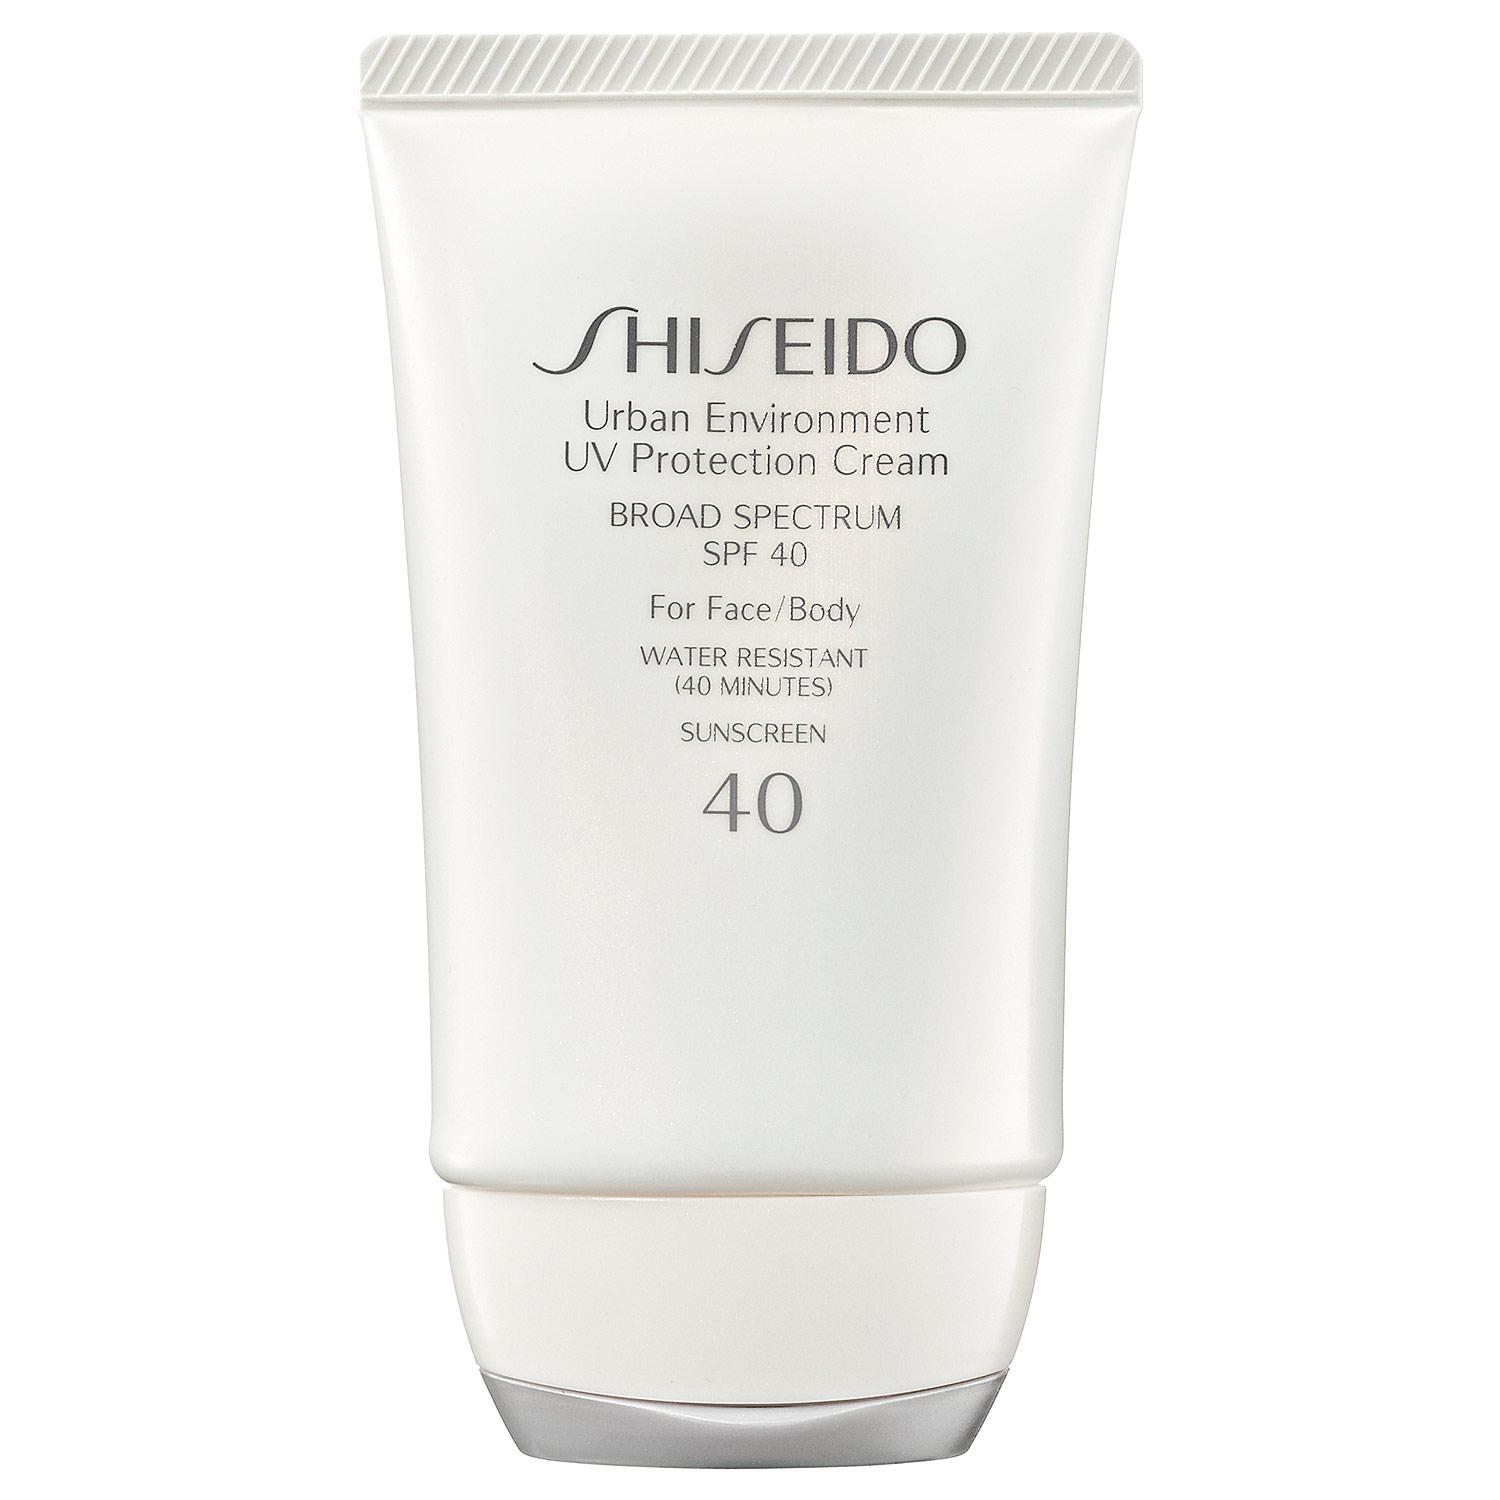 Urban Environment UV Protection Cream Broad Spectrum SPF 40 For Face/Body